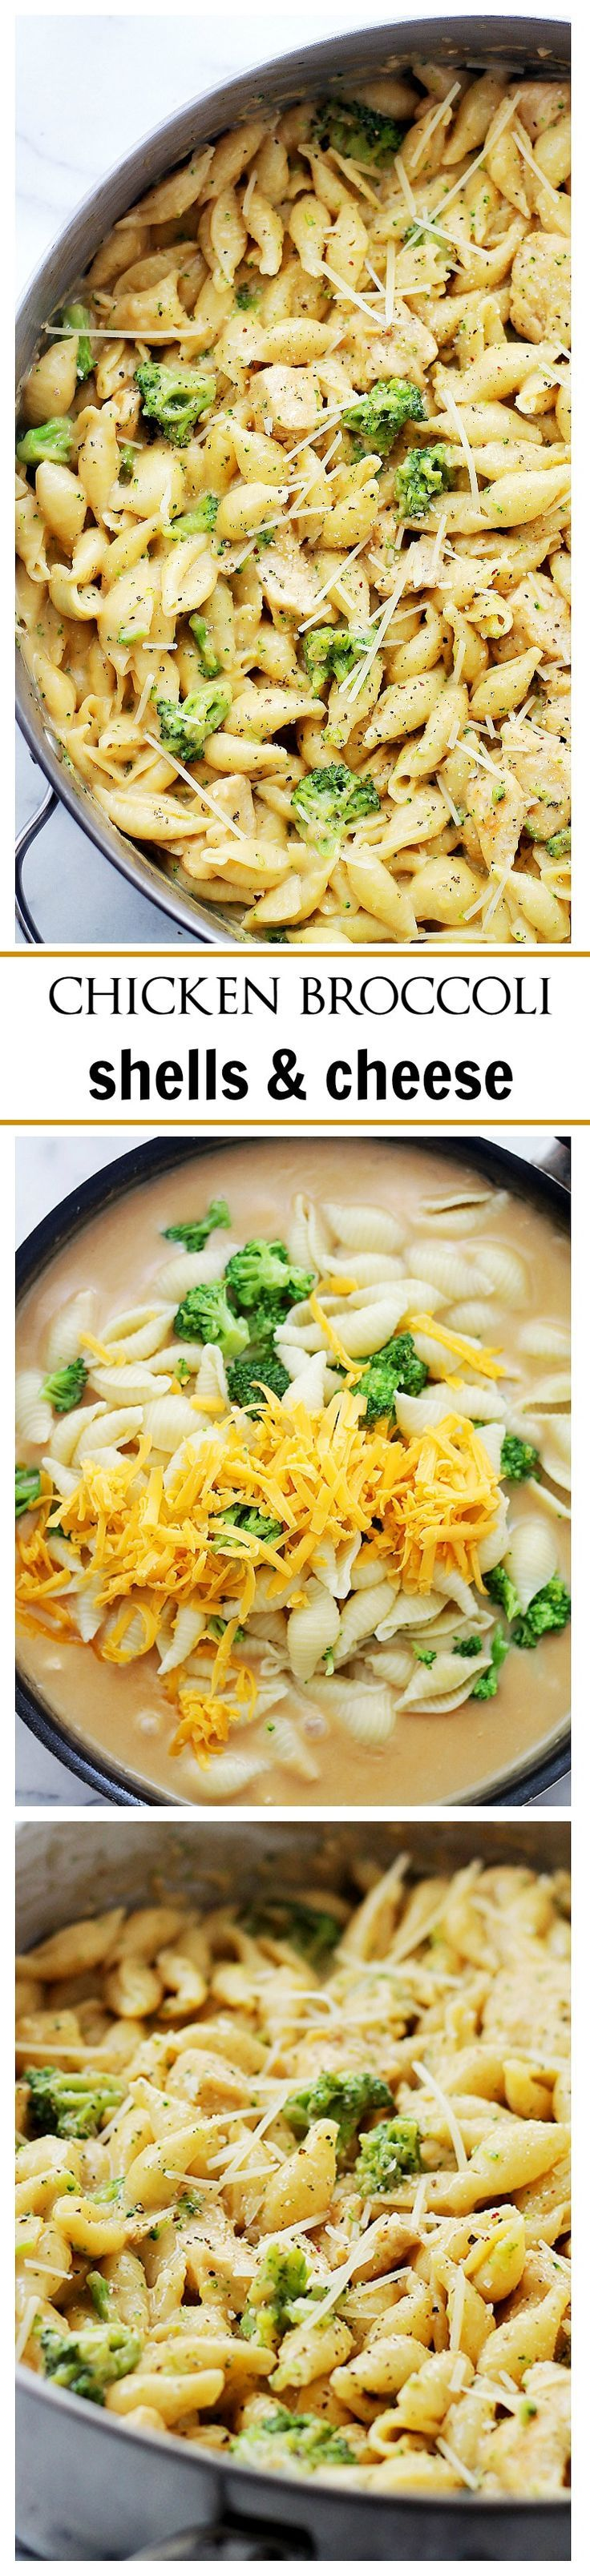 Chicken-Broccoli Shells and Cheese - Homemade, lightened-up shells and cheese, tossed with chicken and broccoli florets.